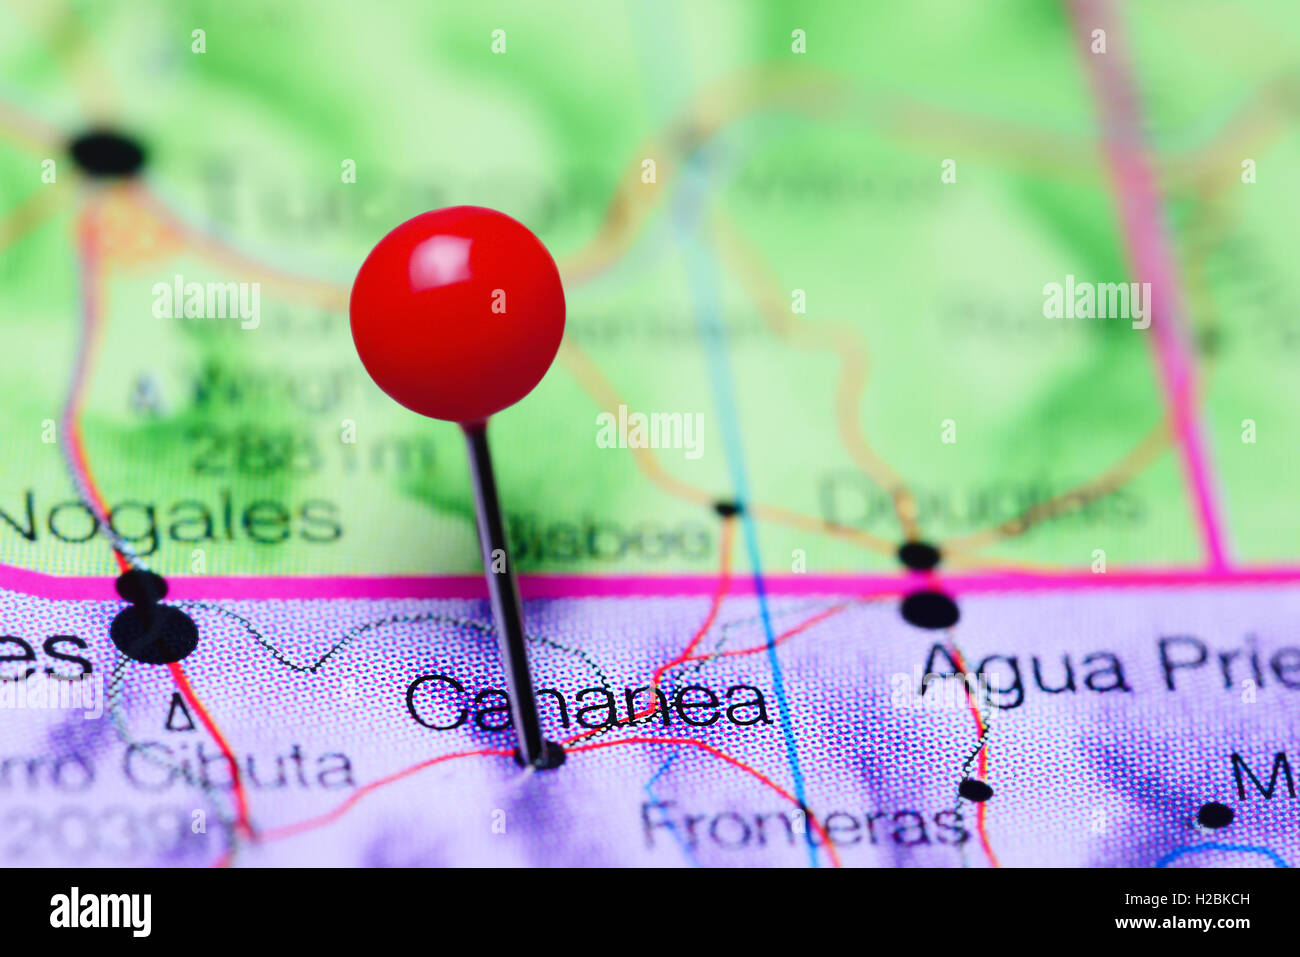 Cananea Mexico Map.Cananea Pinned On A Map Of Mexico Stock Photo 121958609 Alamy